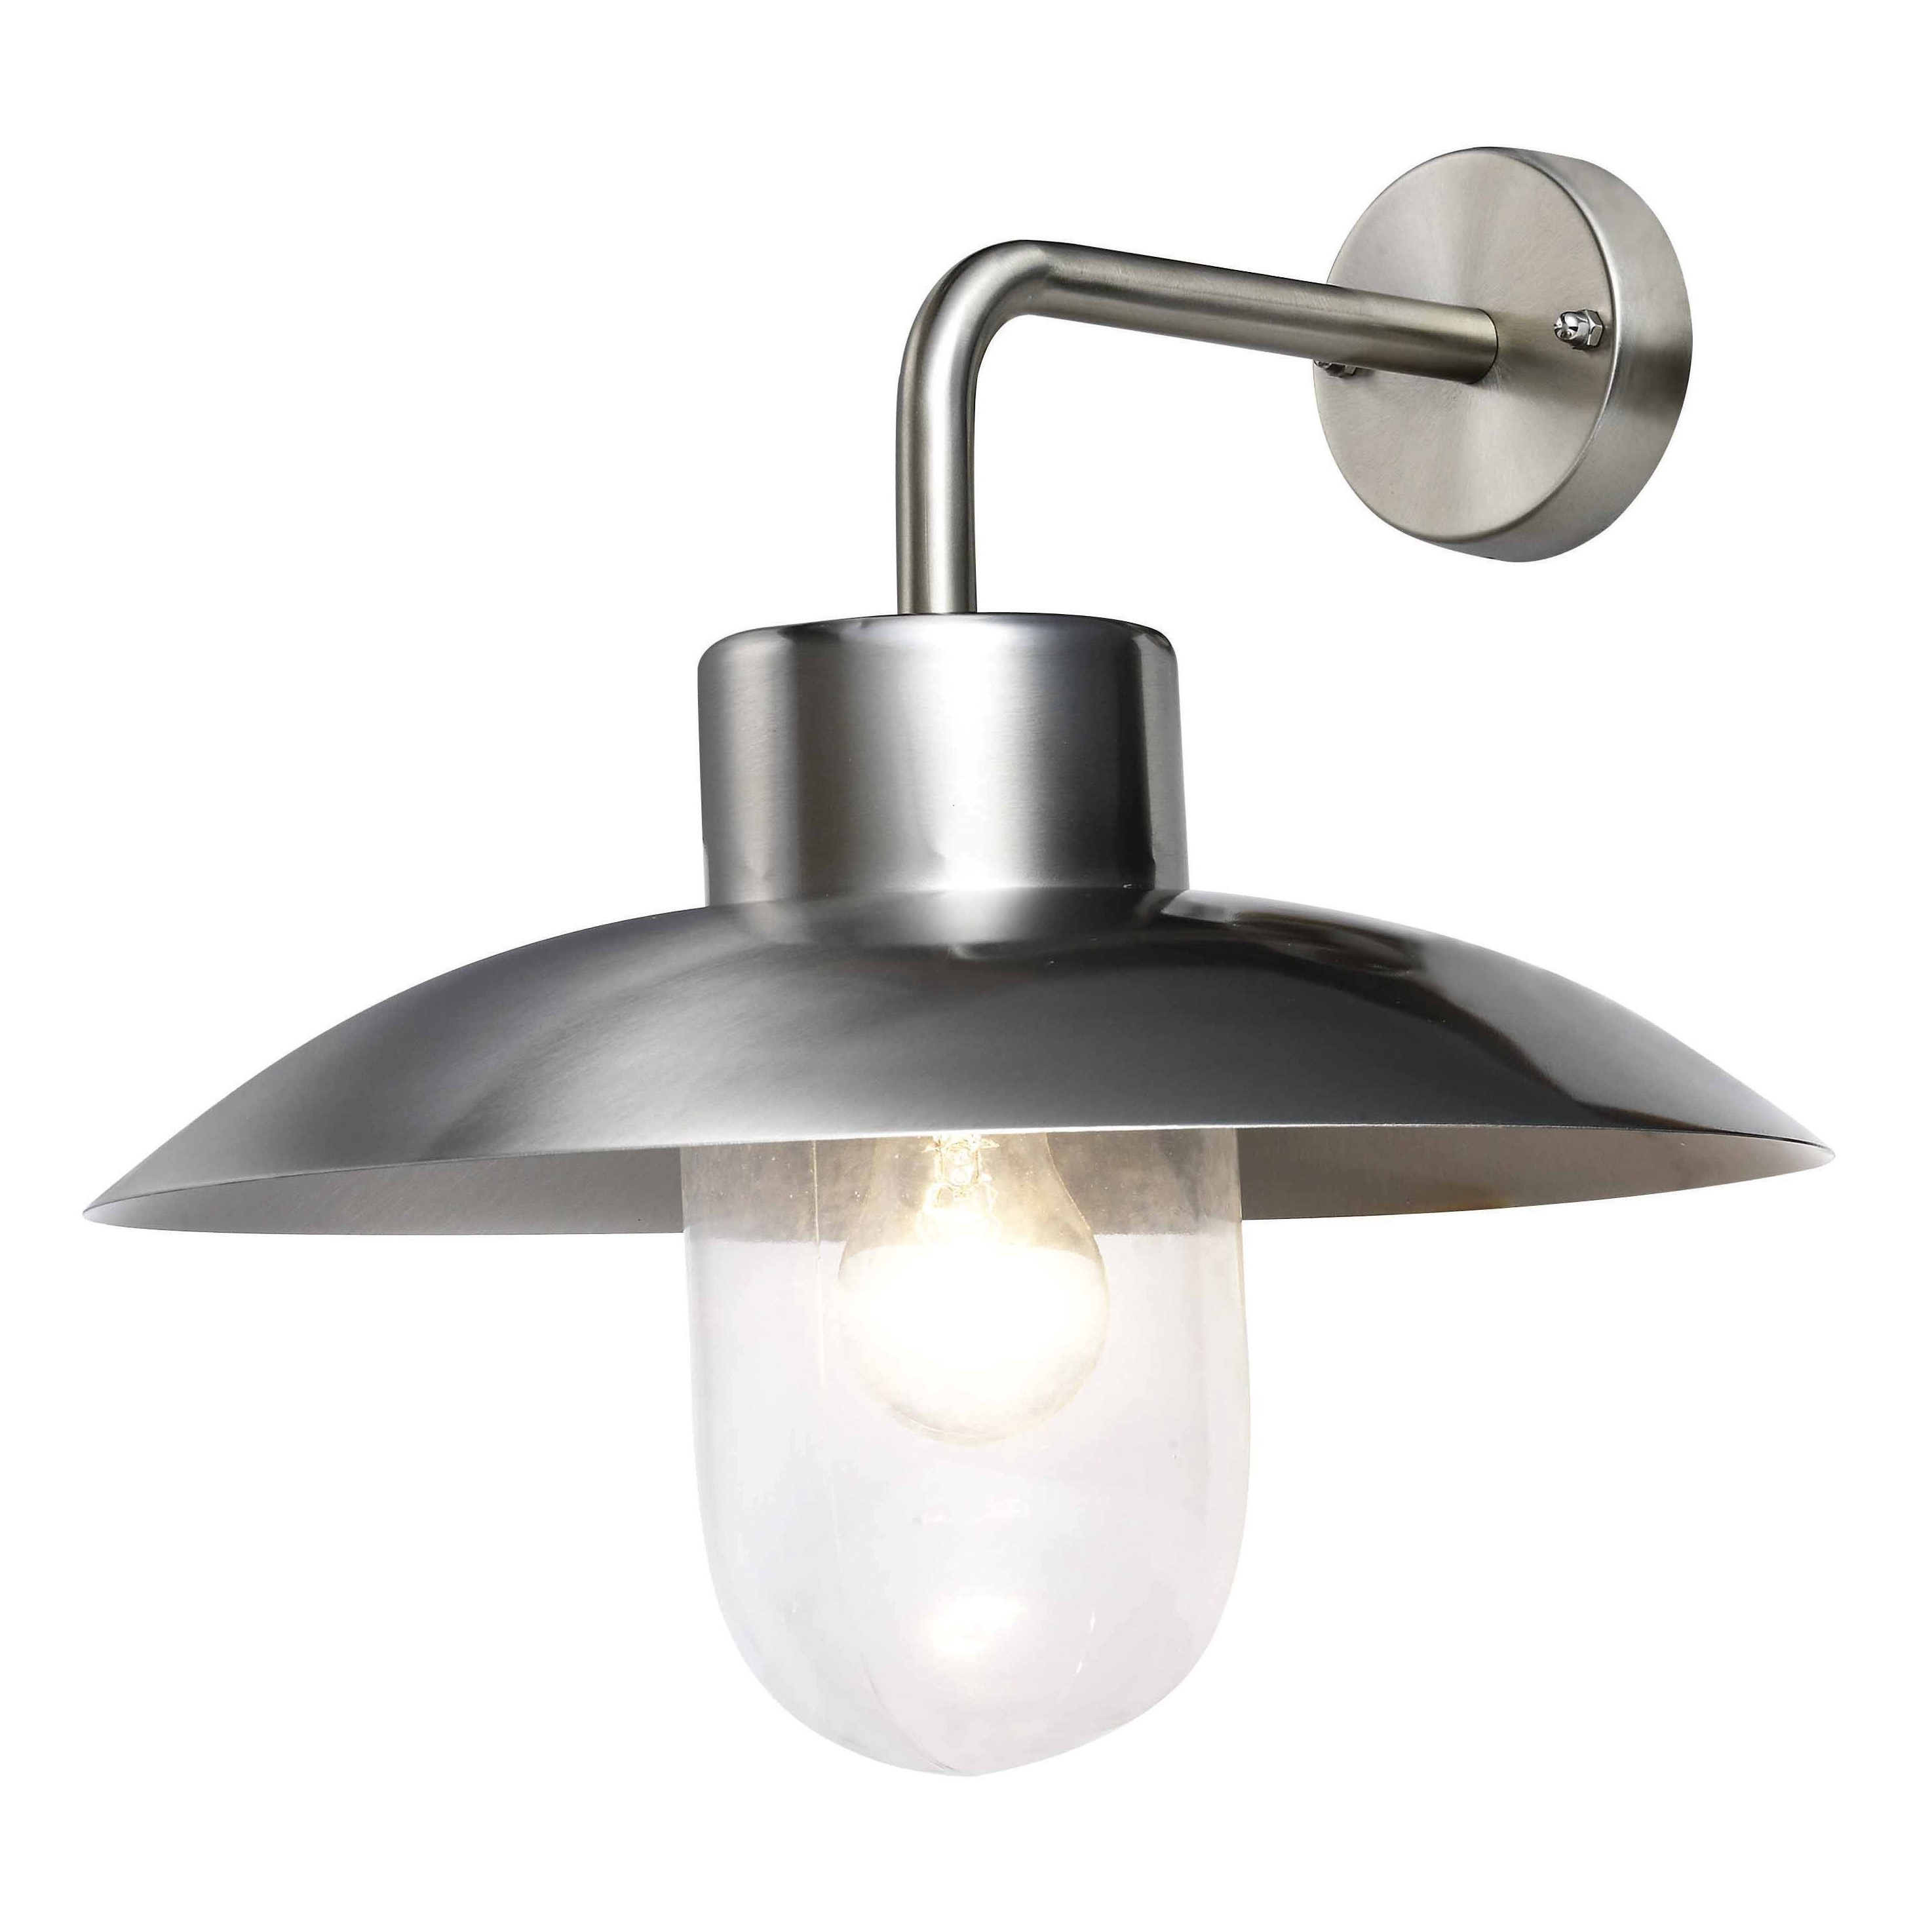 Fashionable Chrome Outdoor Wall Lighting Within Blooma Mara External Wall Light (View 11 of 20)